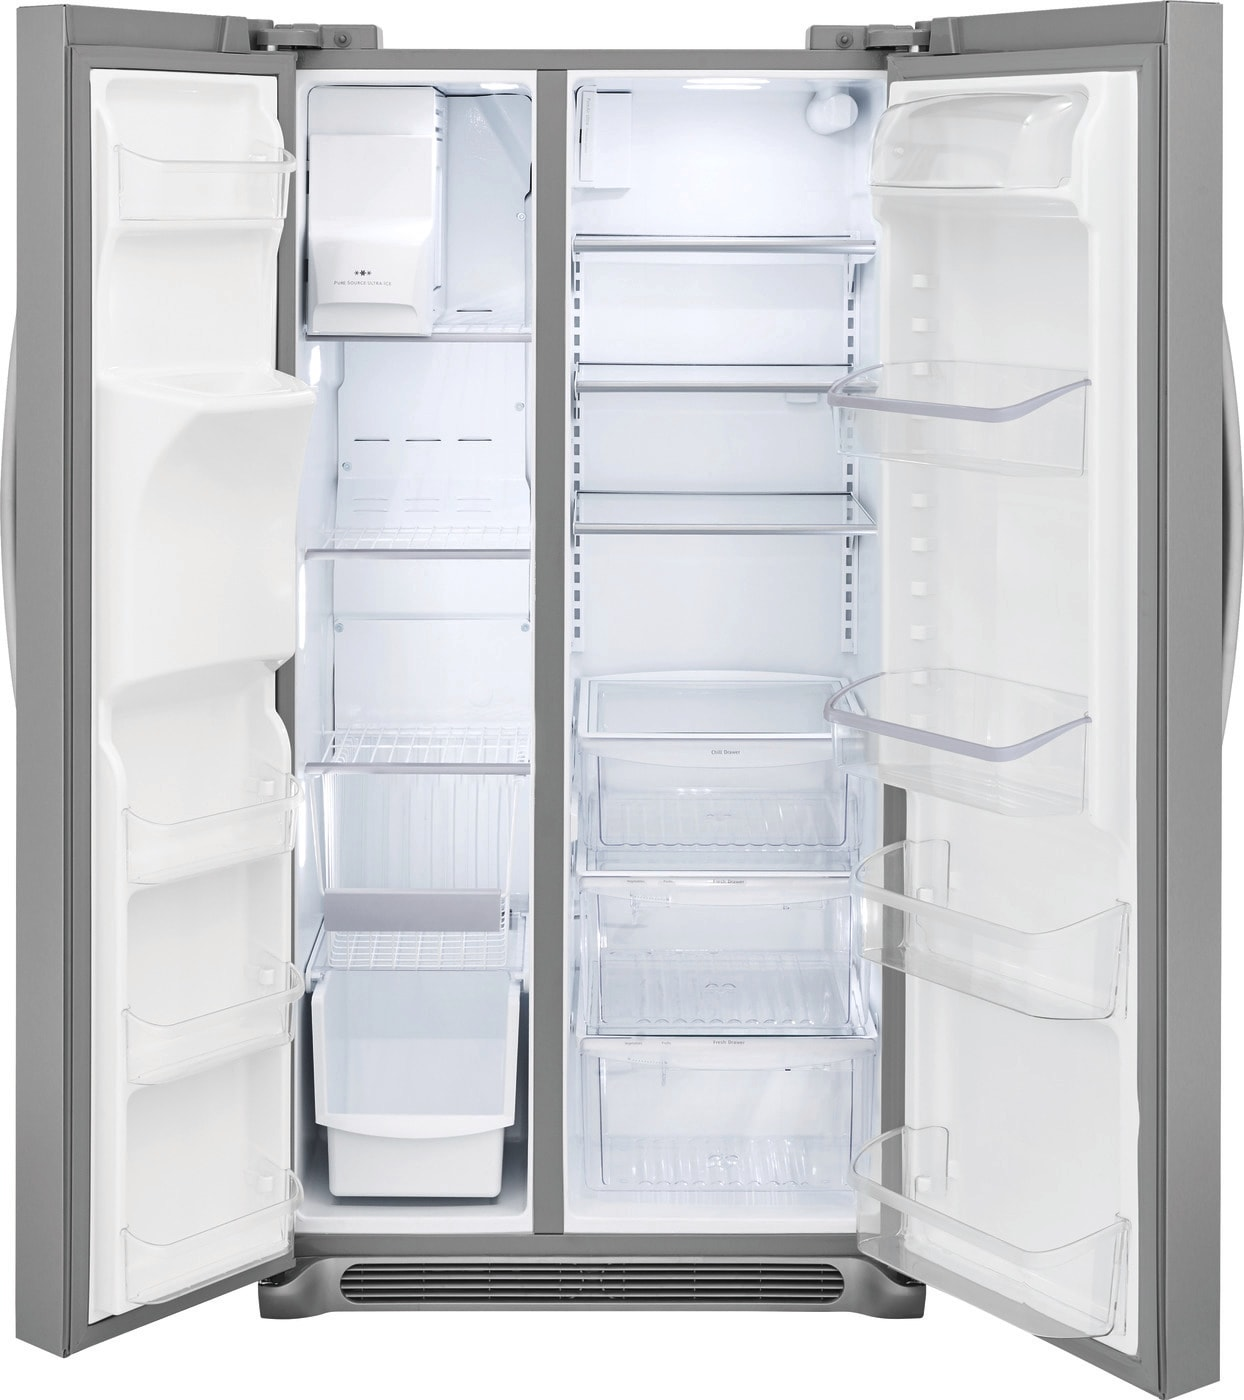 25.5 Cu. Ft. Side-by-Side Refrigerator Stainless Steel FGSS2635TF